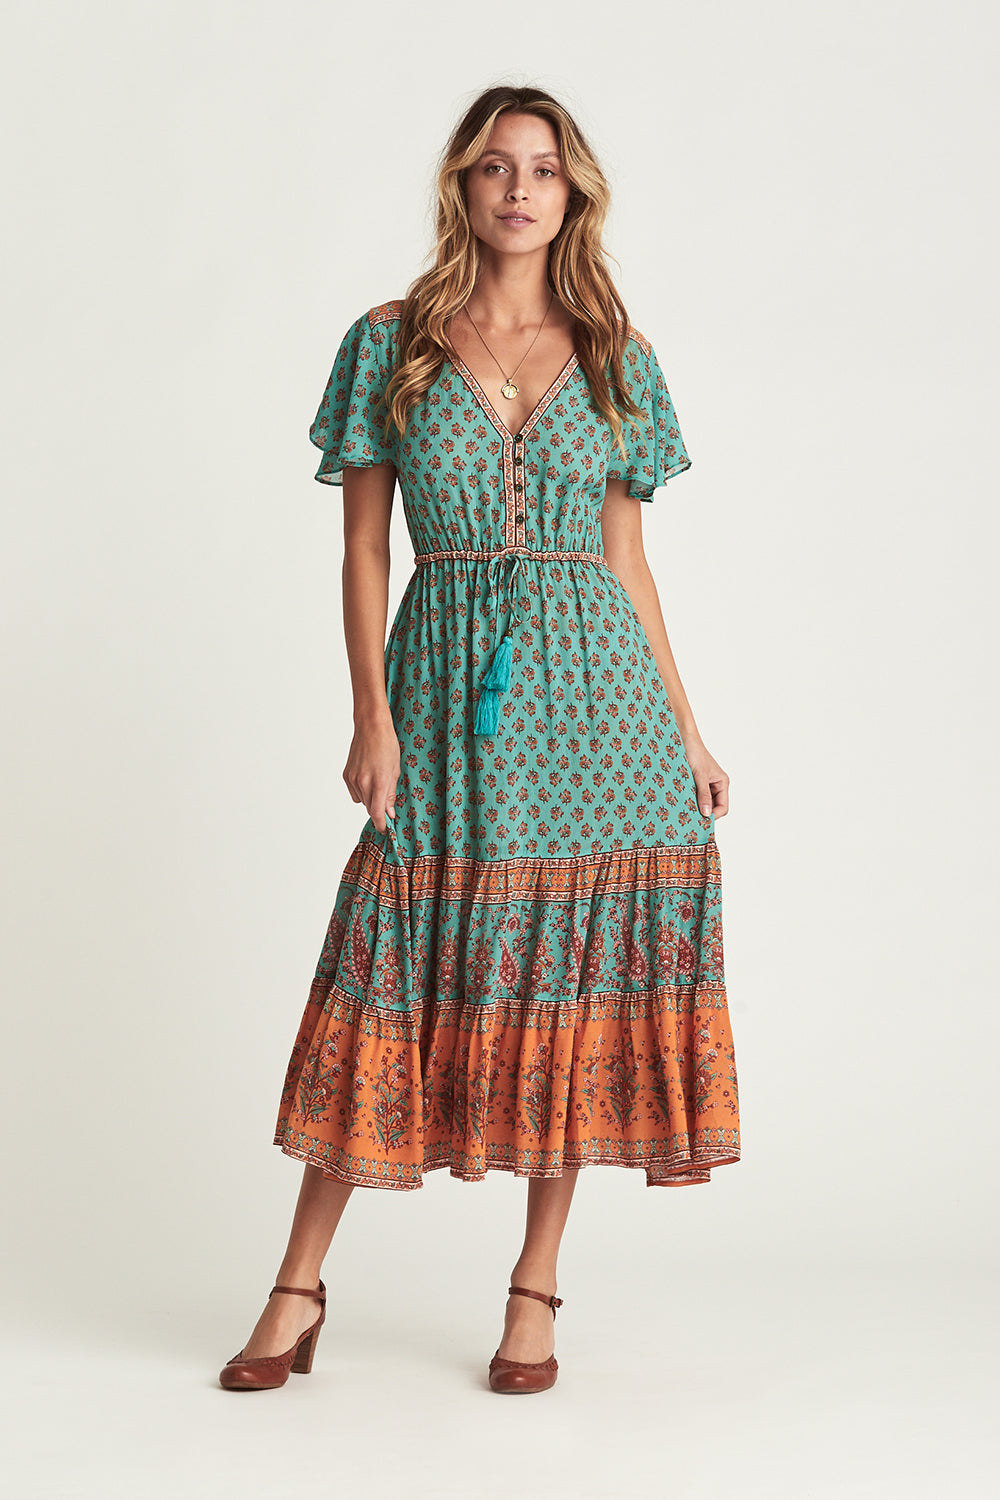 Serafina Sundress in Kingfisher